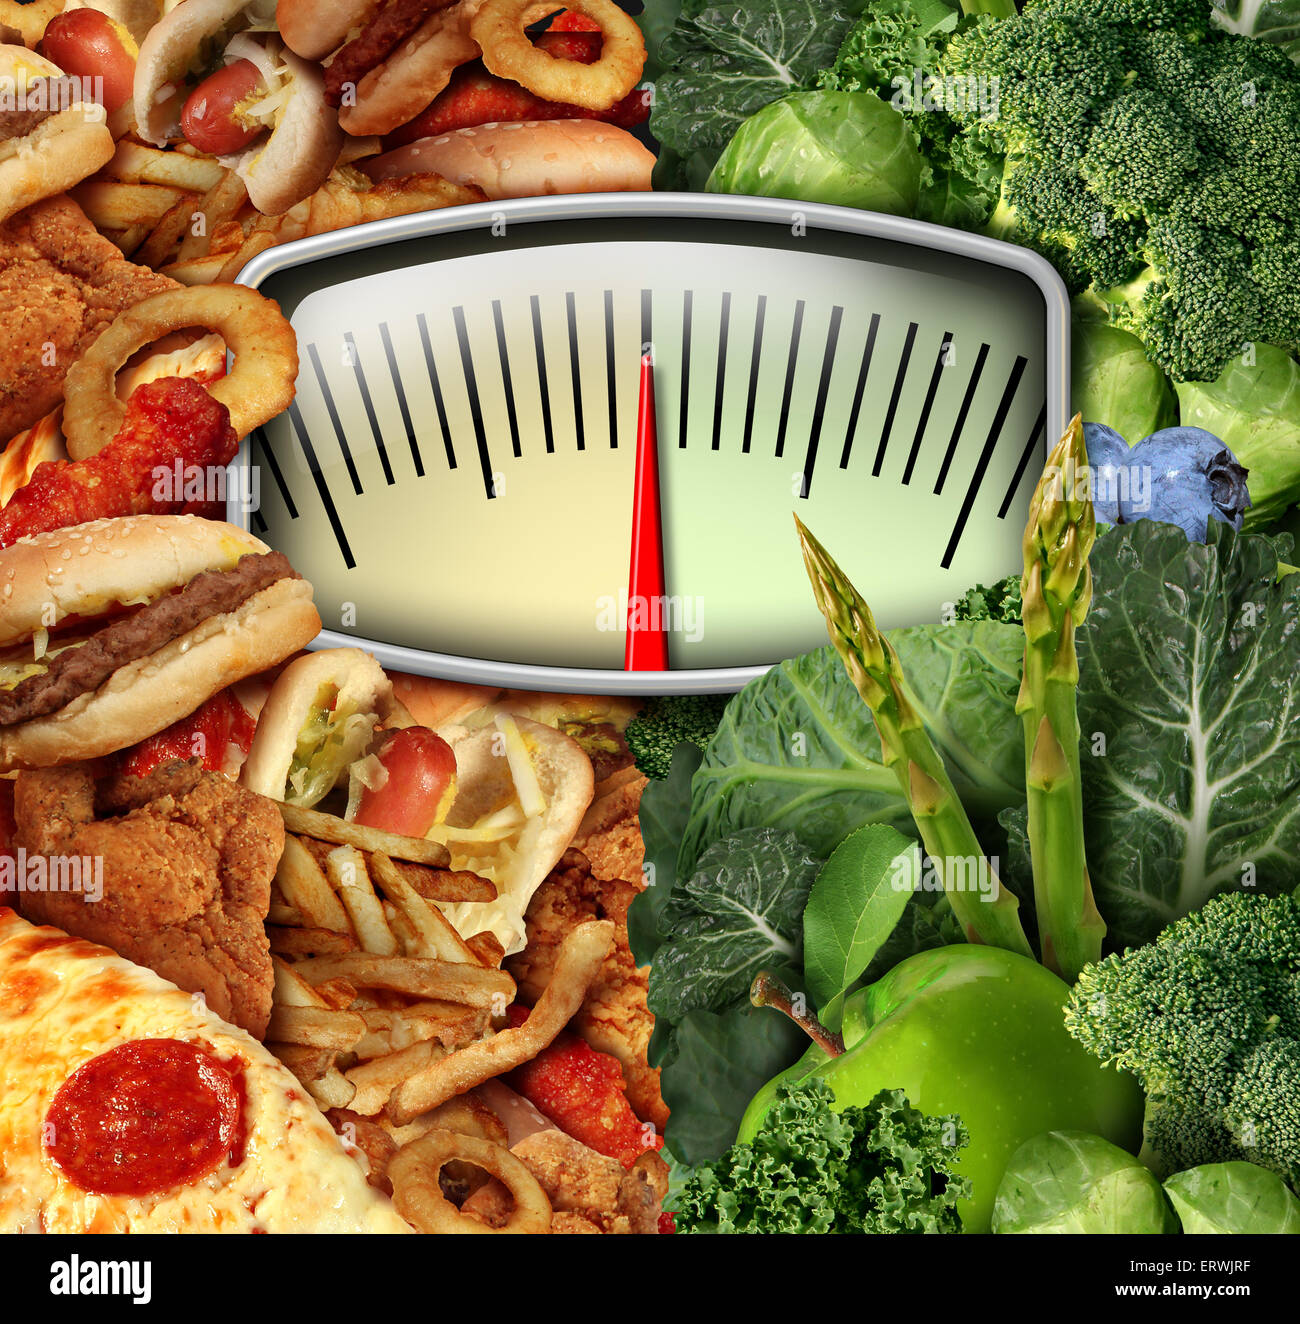 Dieting choice weight scale with unhealthy junk food on one side and healthy fruit and vegetables on the other half - Stock Image